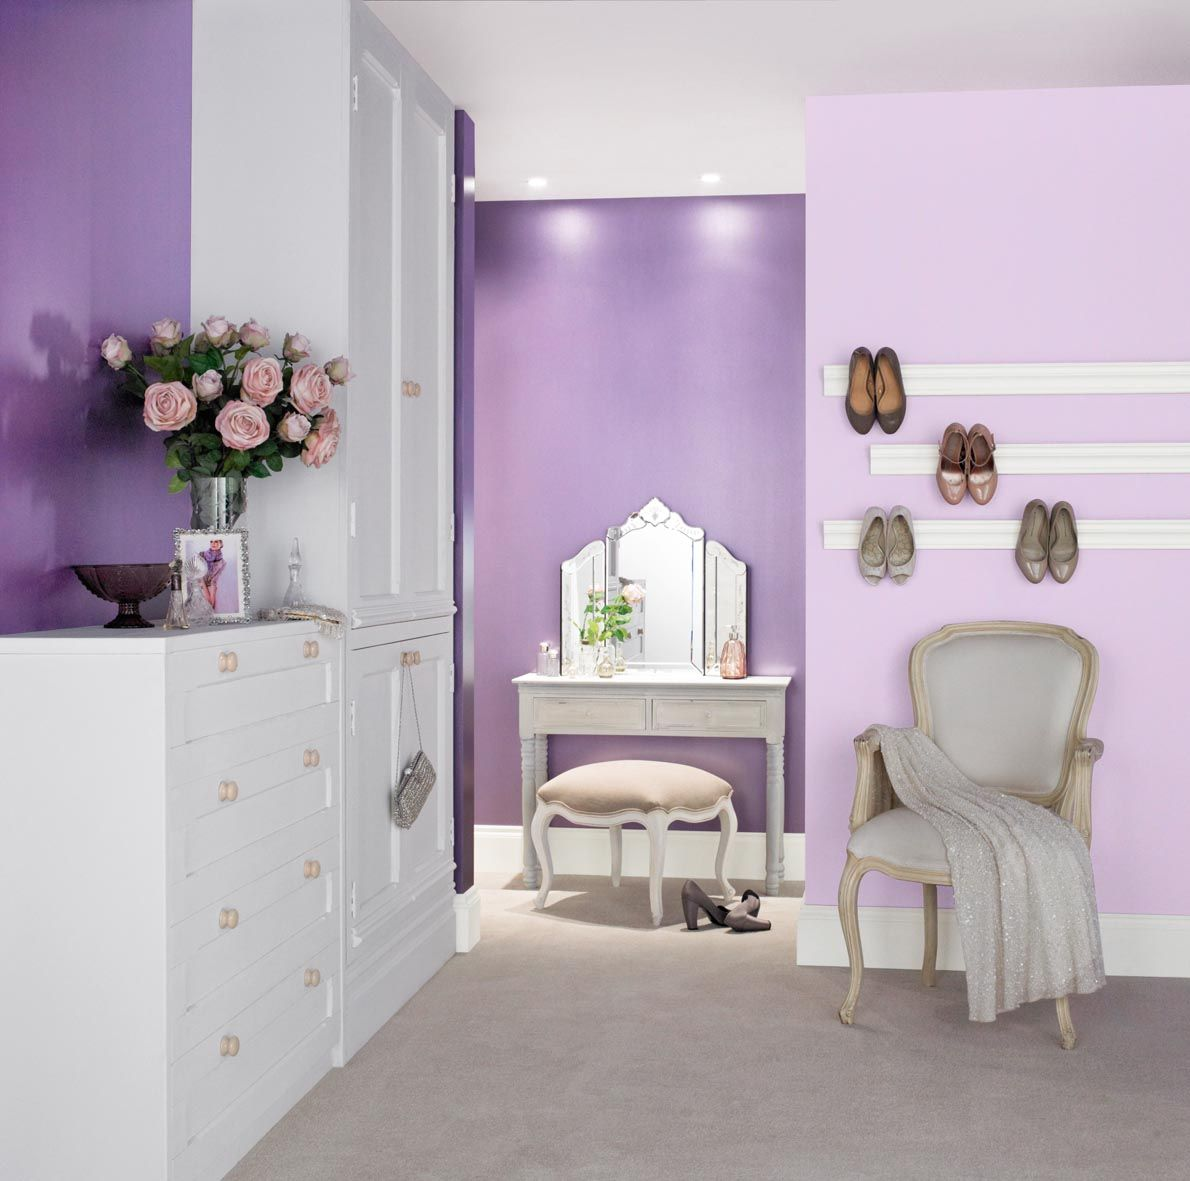 Glamorous Bedroom Painted With Crown Matt Emulsion In Lavender Cupcake And Metallic Purple Dazzle